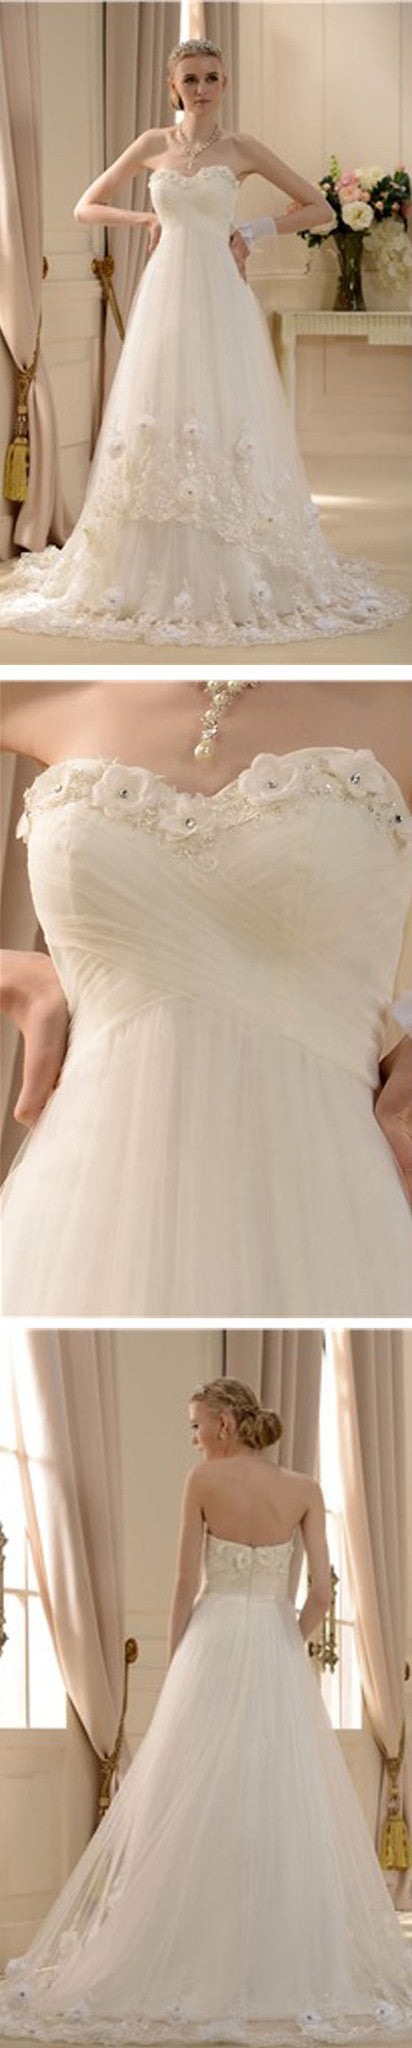 Empire Sweetheart Floor-length A-line Court Lace Trimmed Wedding Dress, WD0174